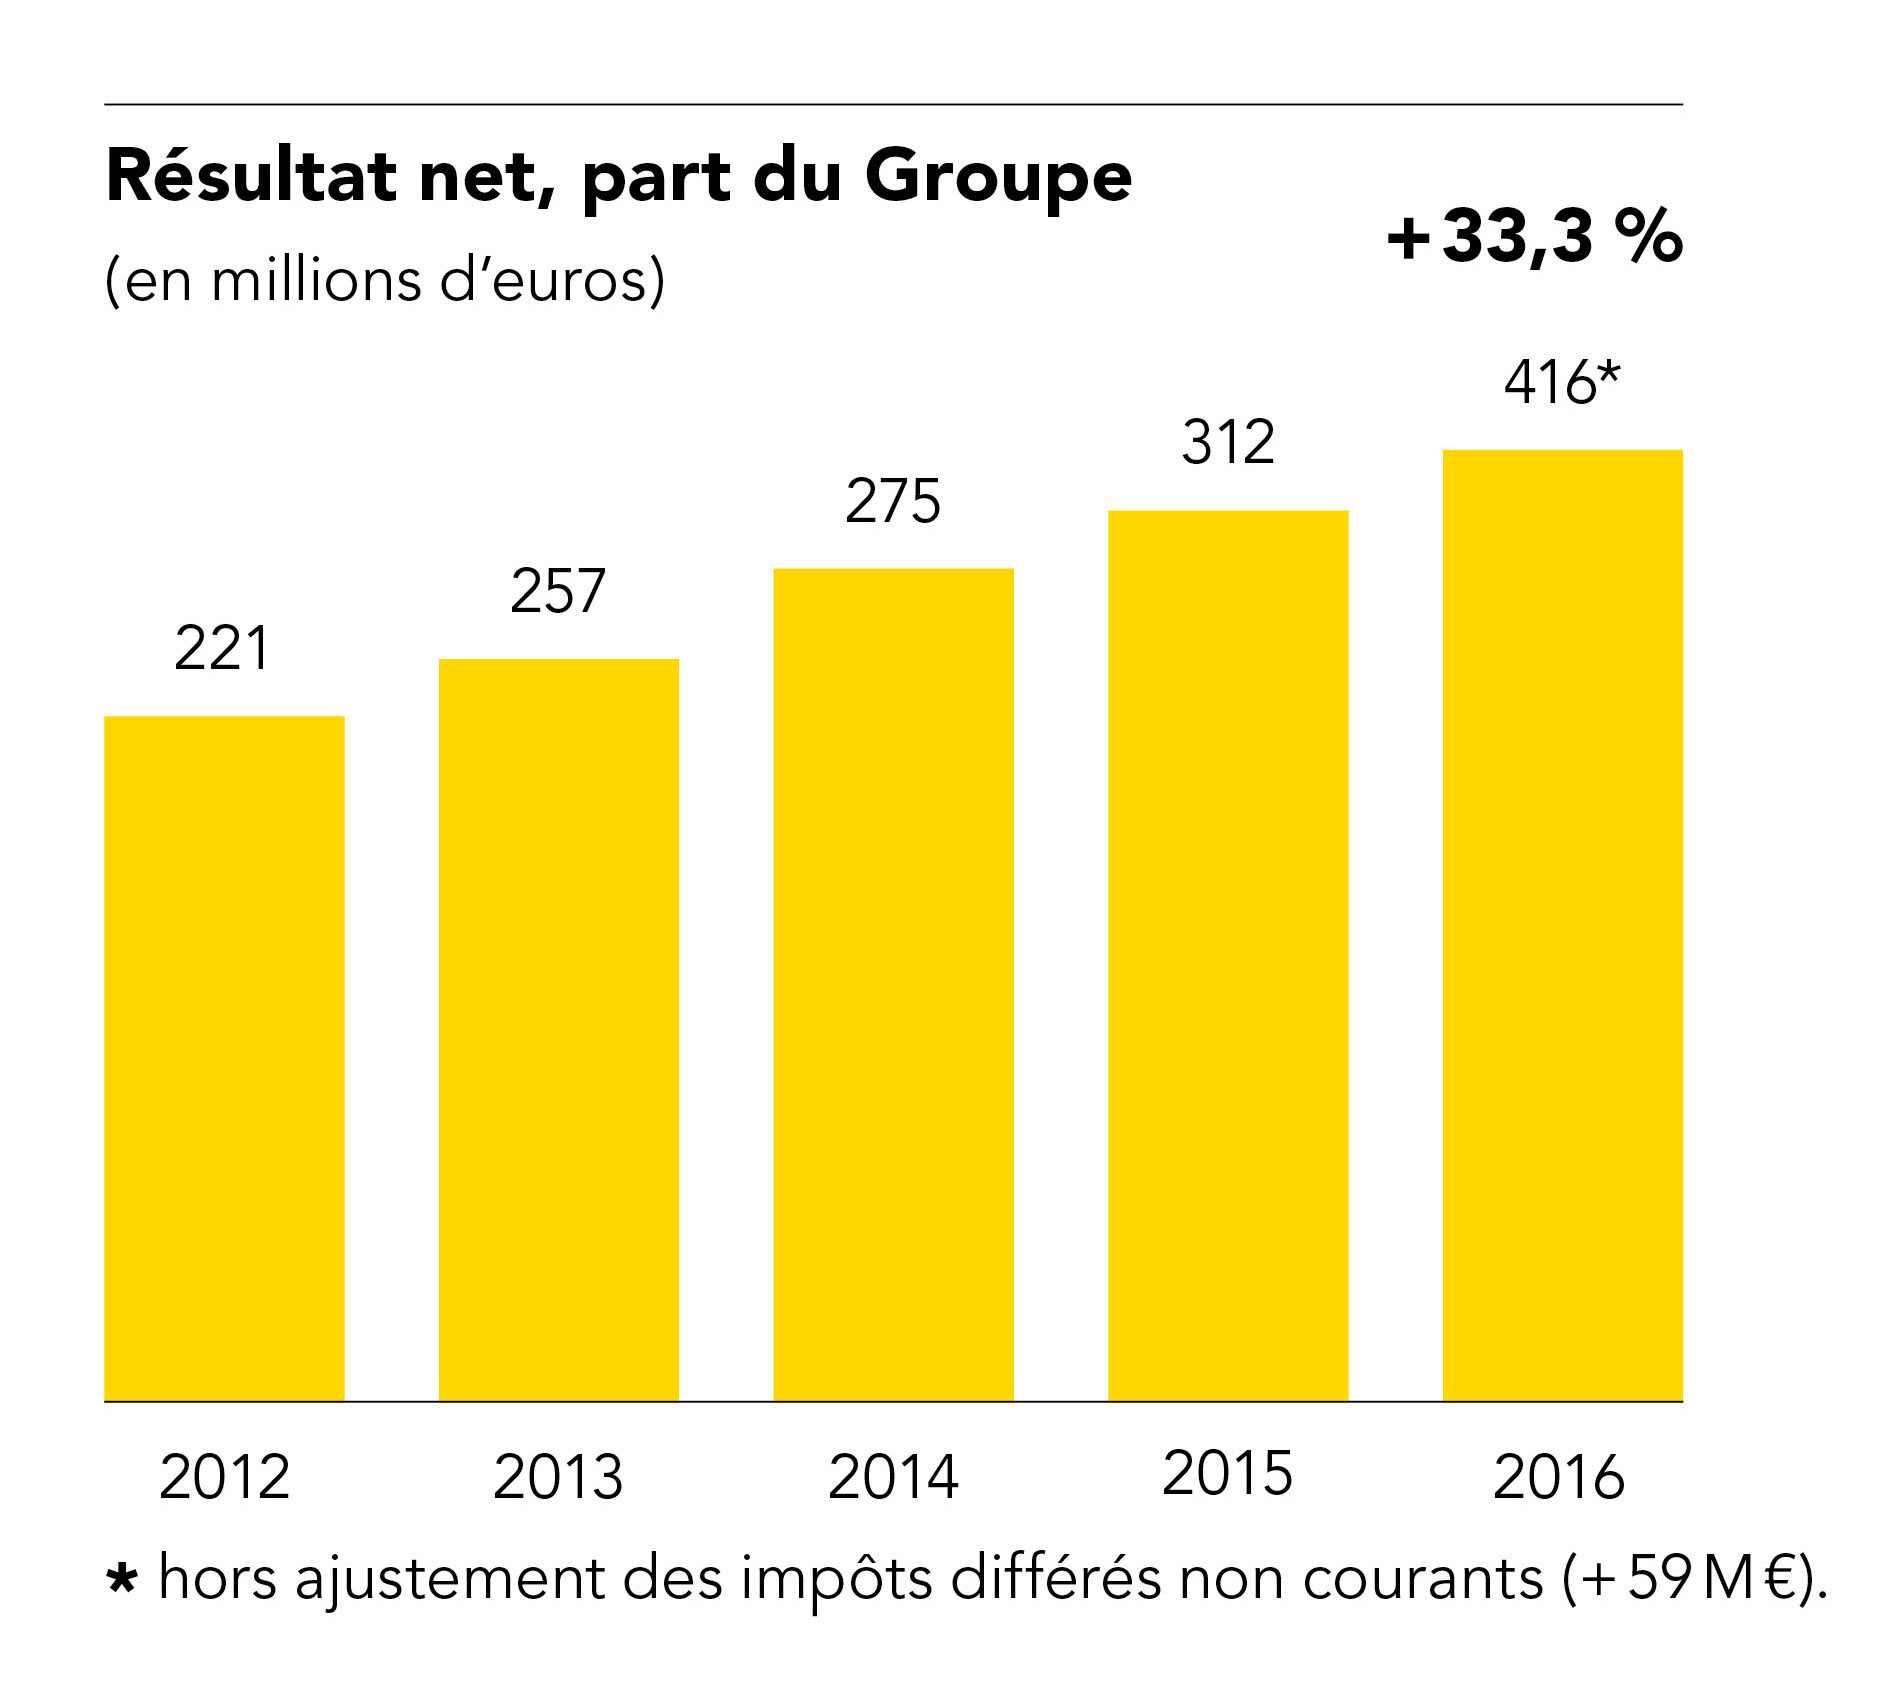 RESULTAT_NET_PART_DU_GROUPE.jpg